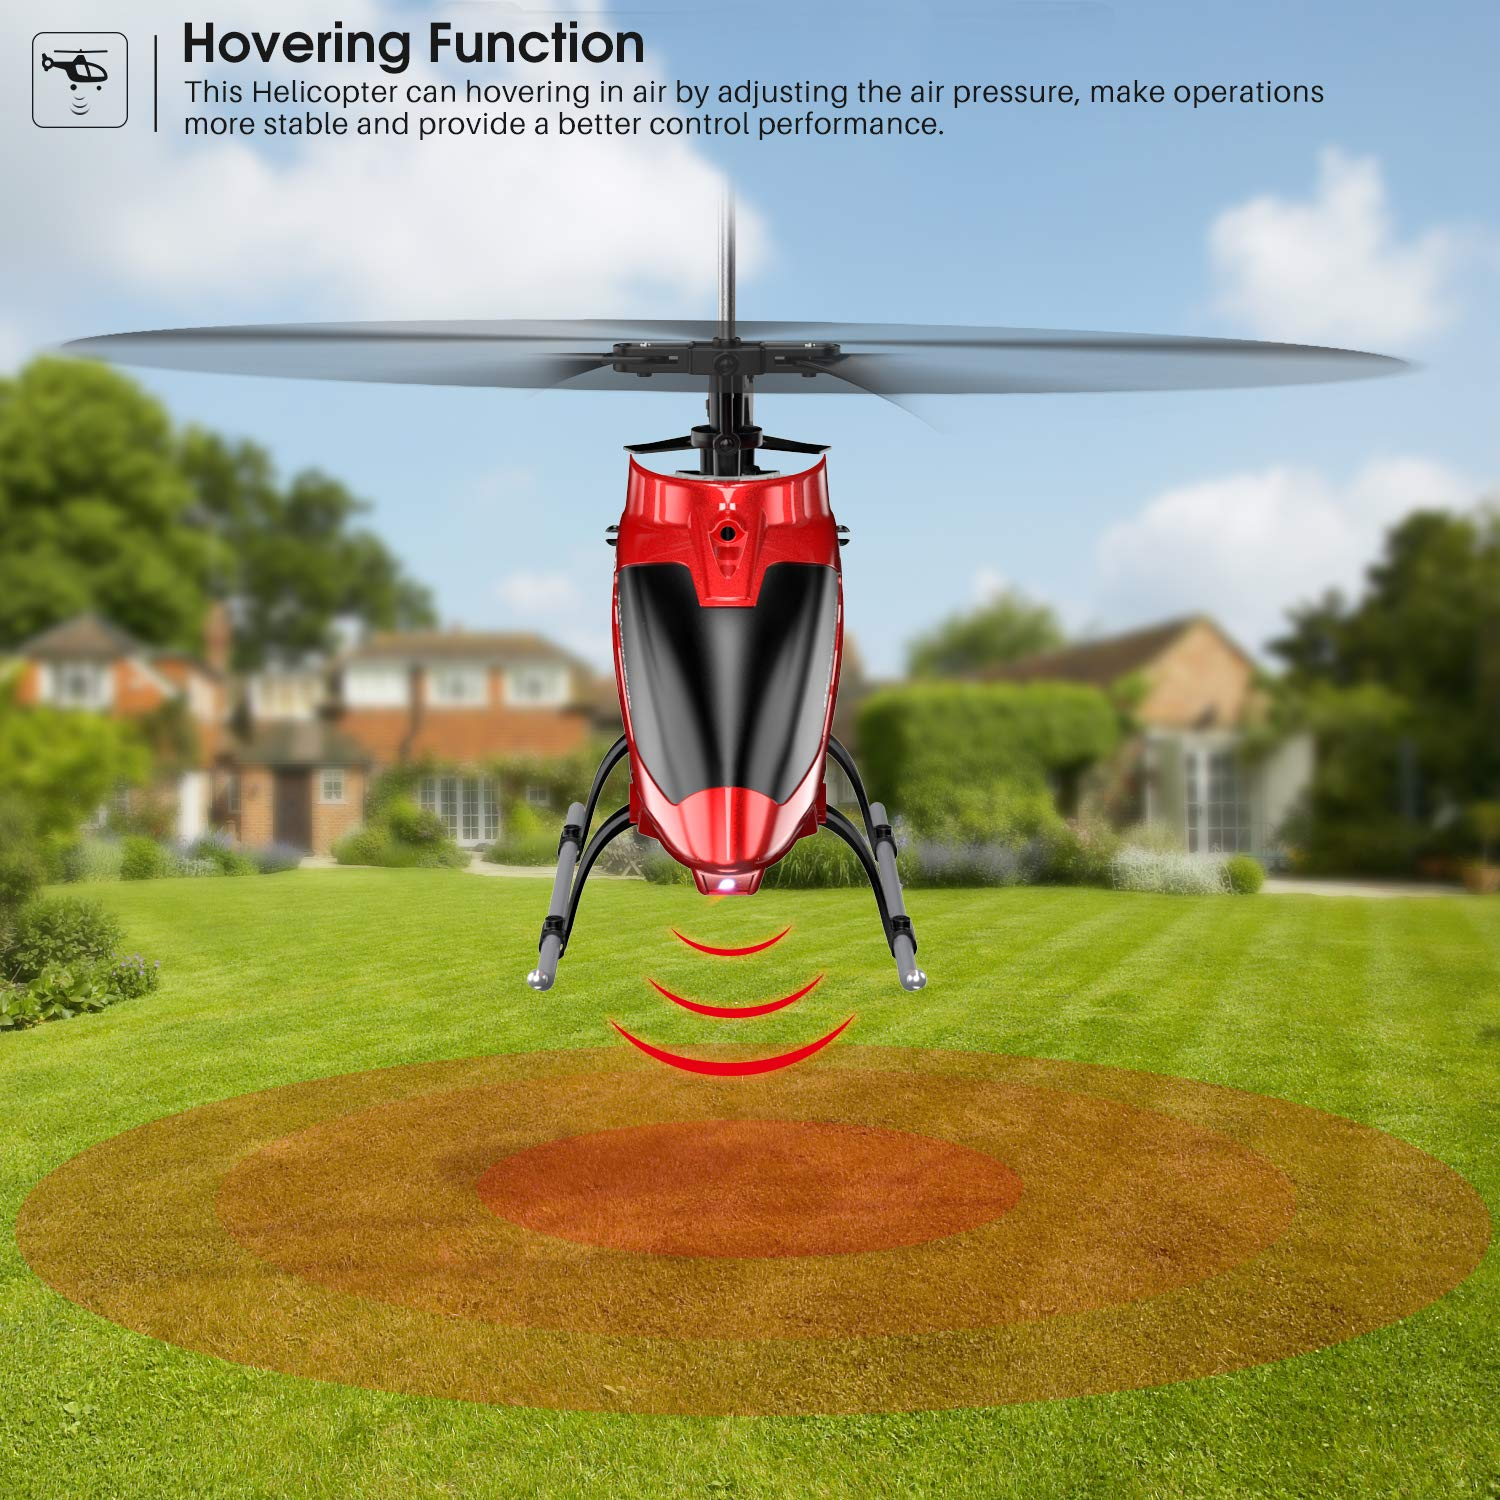 Sturdy Alloy Material S37 Aircraft with Altitude Hold,3.5 Channel Gyro Stabilizer and High /&Low Speed Multi-Protection Drone for Kids and Beginners to Play Indoor-Red 【Biggest Size】 RC Helicopter